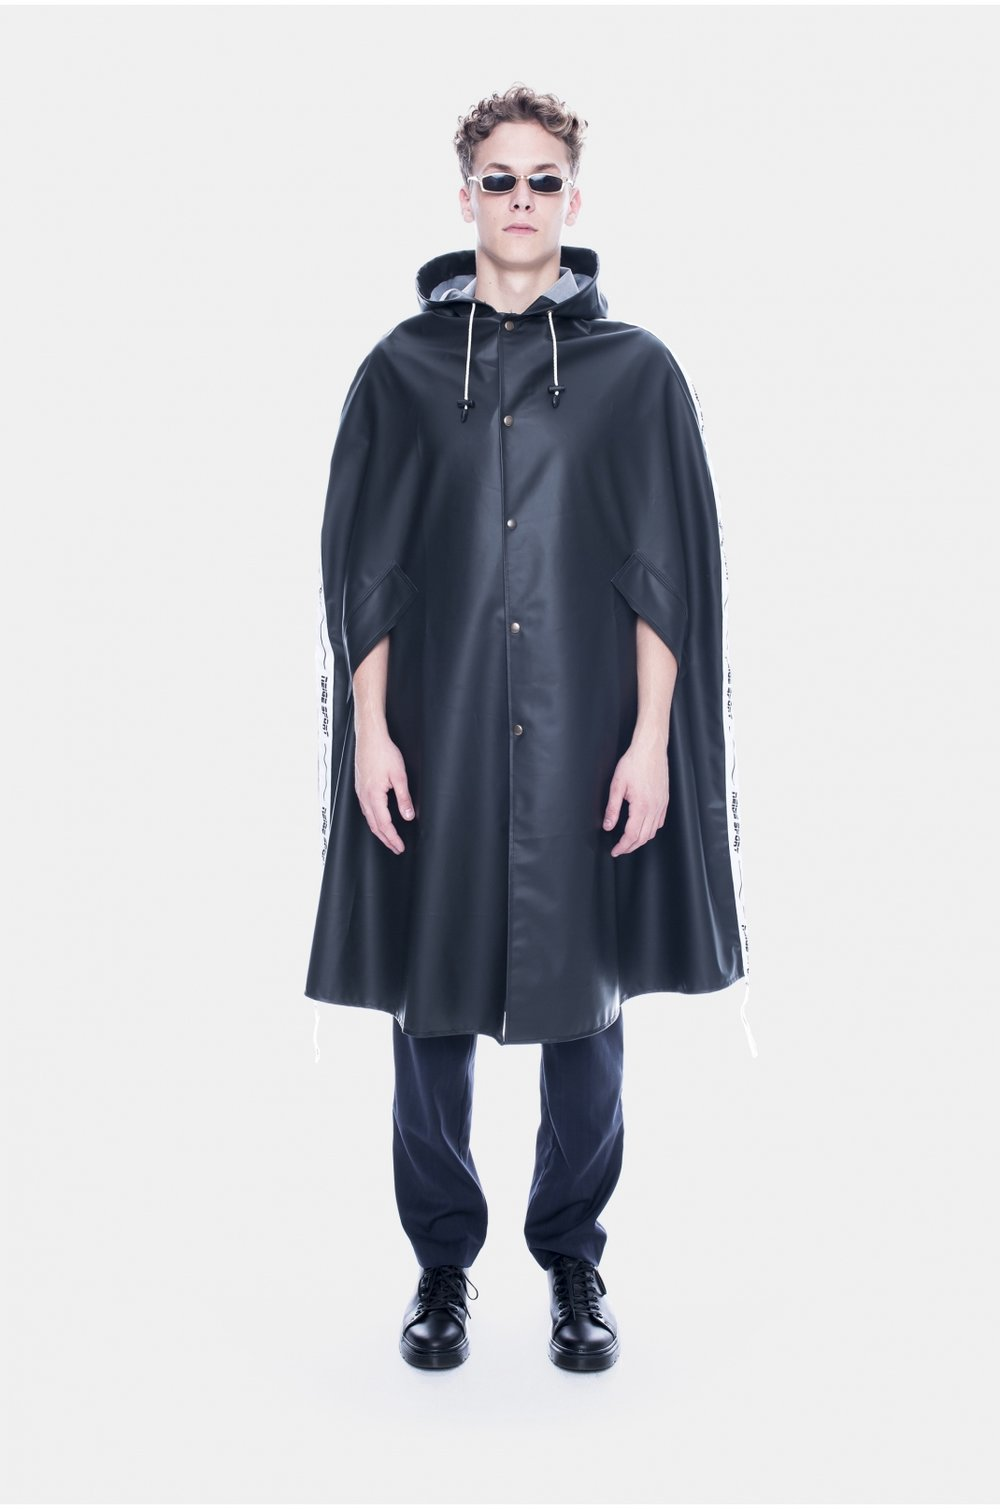 bodegathirteen_neige_cape_black